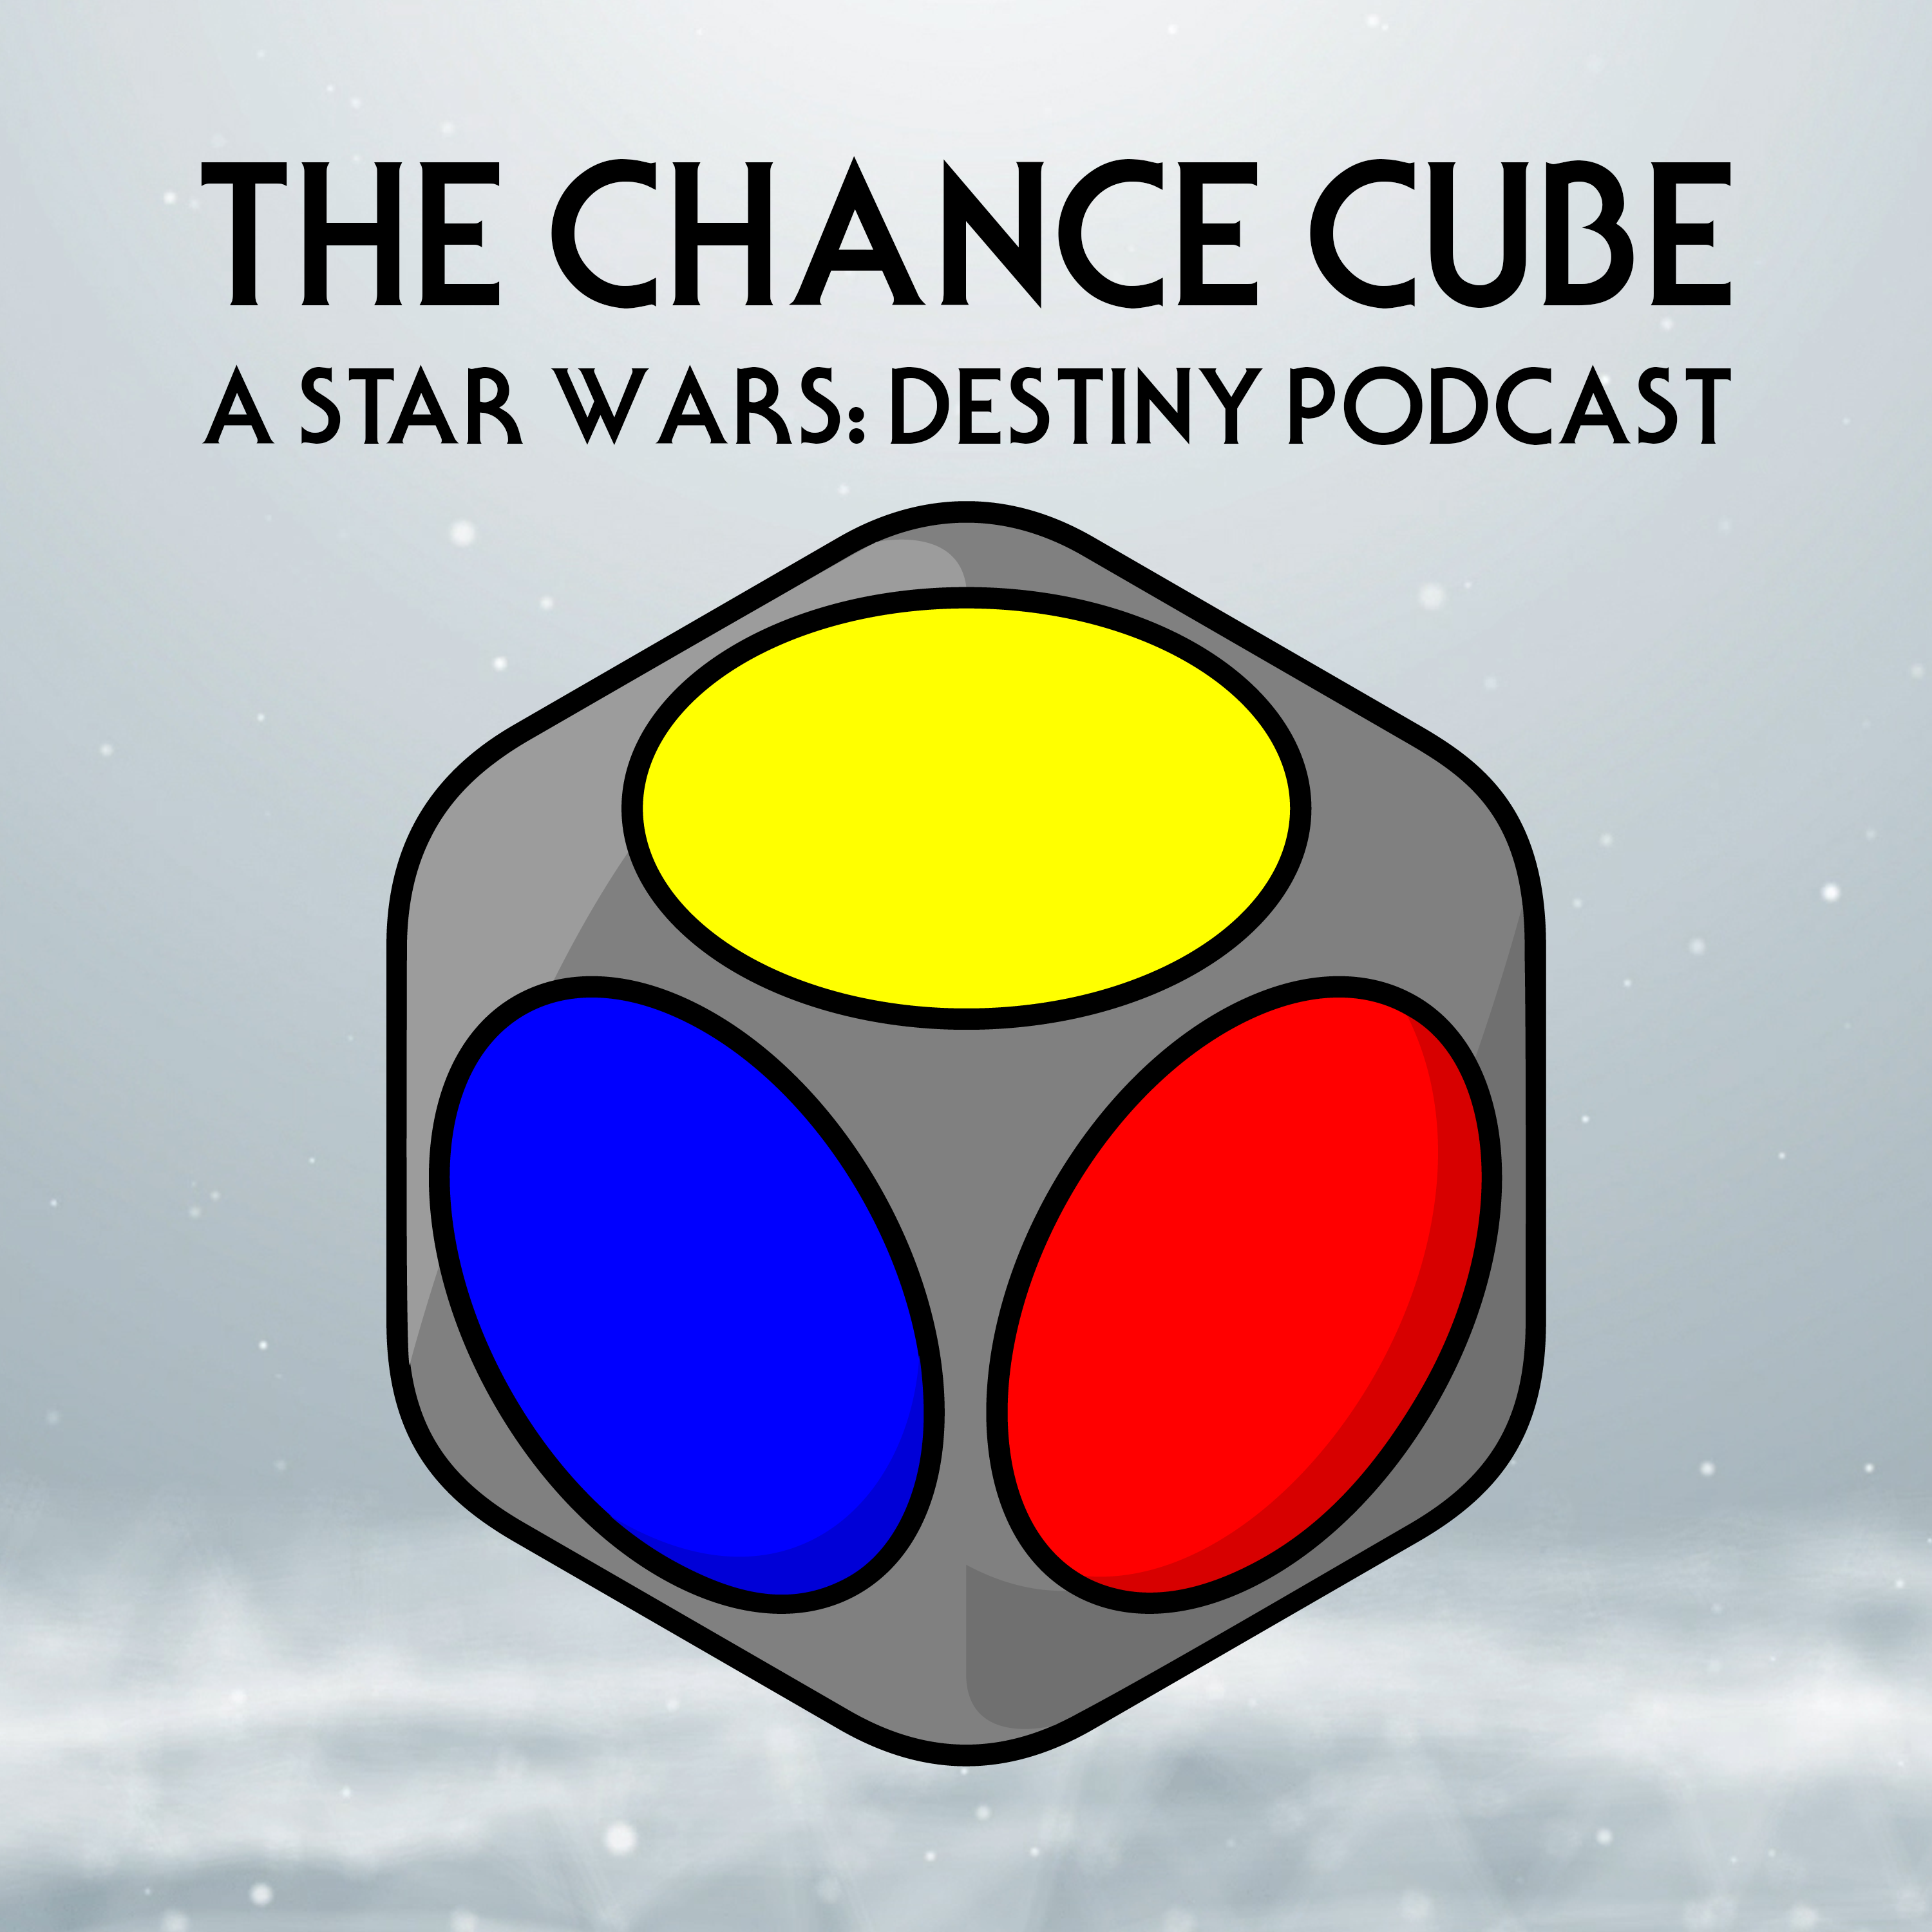 The Chance Cube - A Star Wars: Destiny Podcast